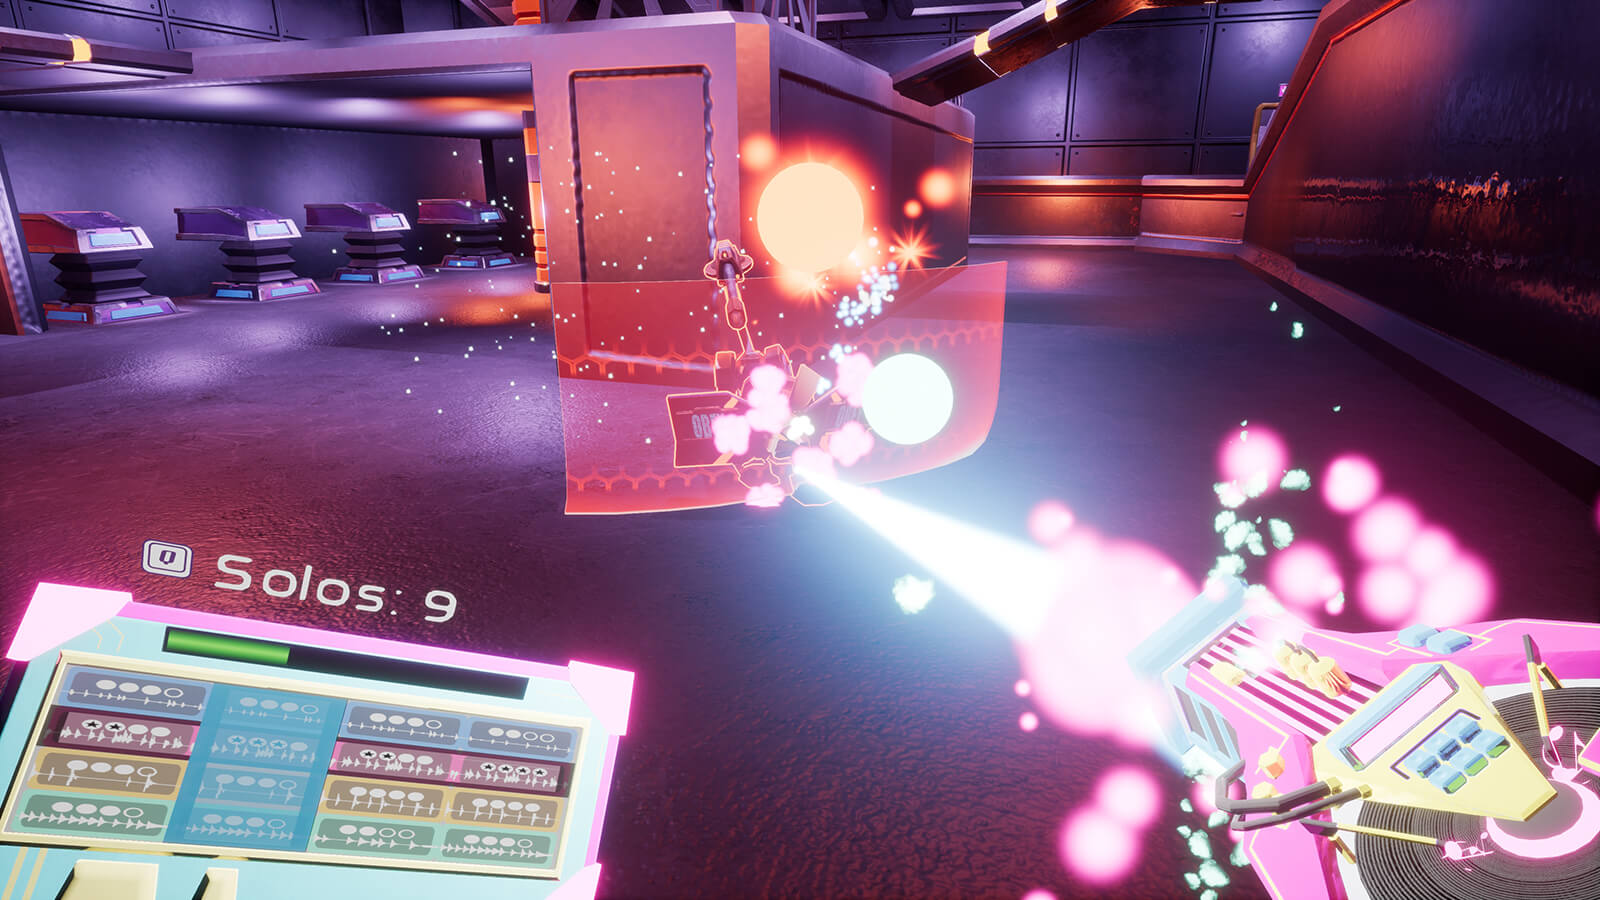 The player wields a pink turntable-like gun, blasting a white beam at a robotic enemy.